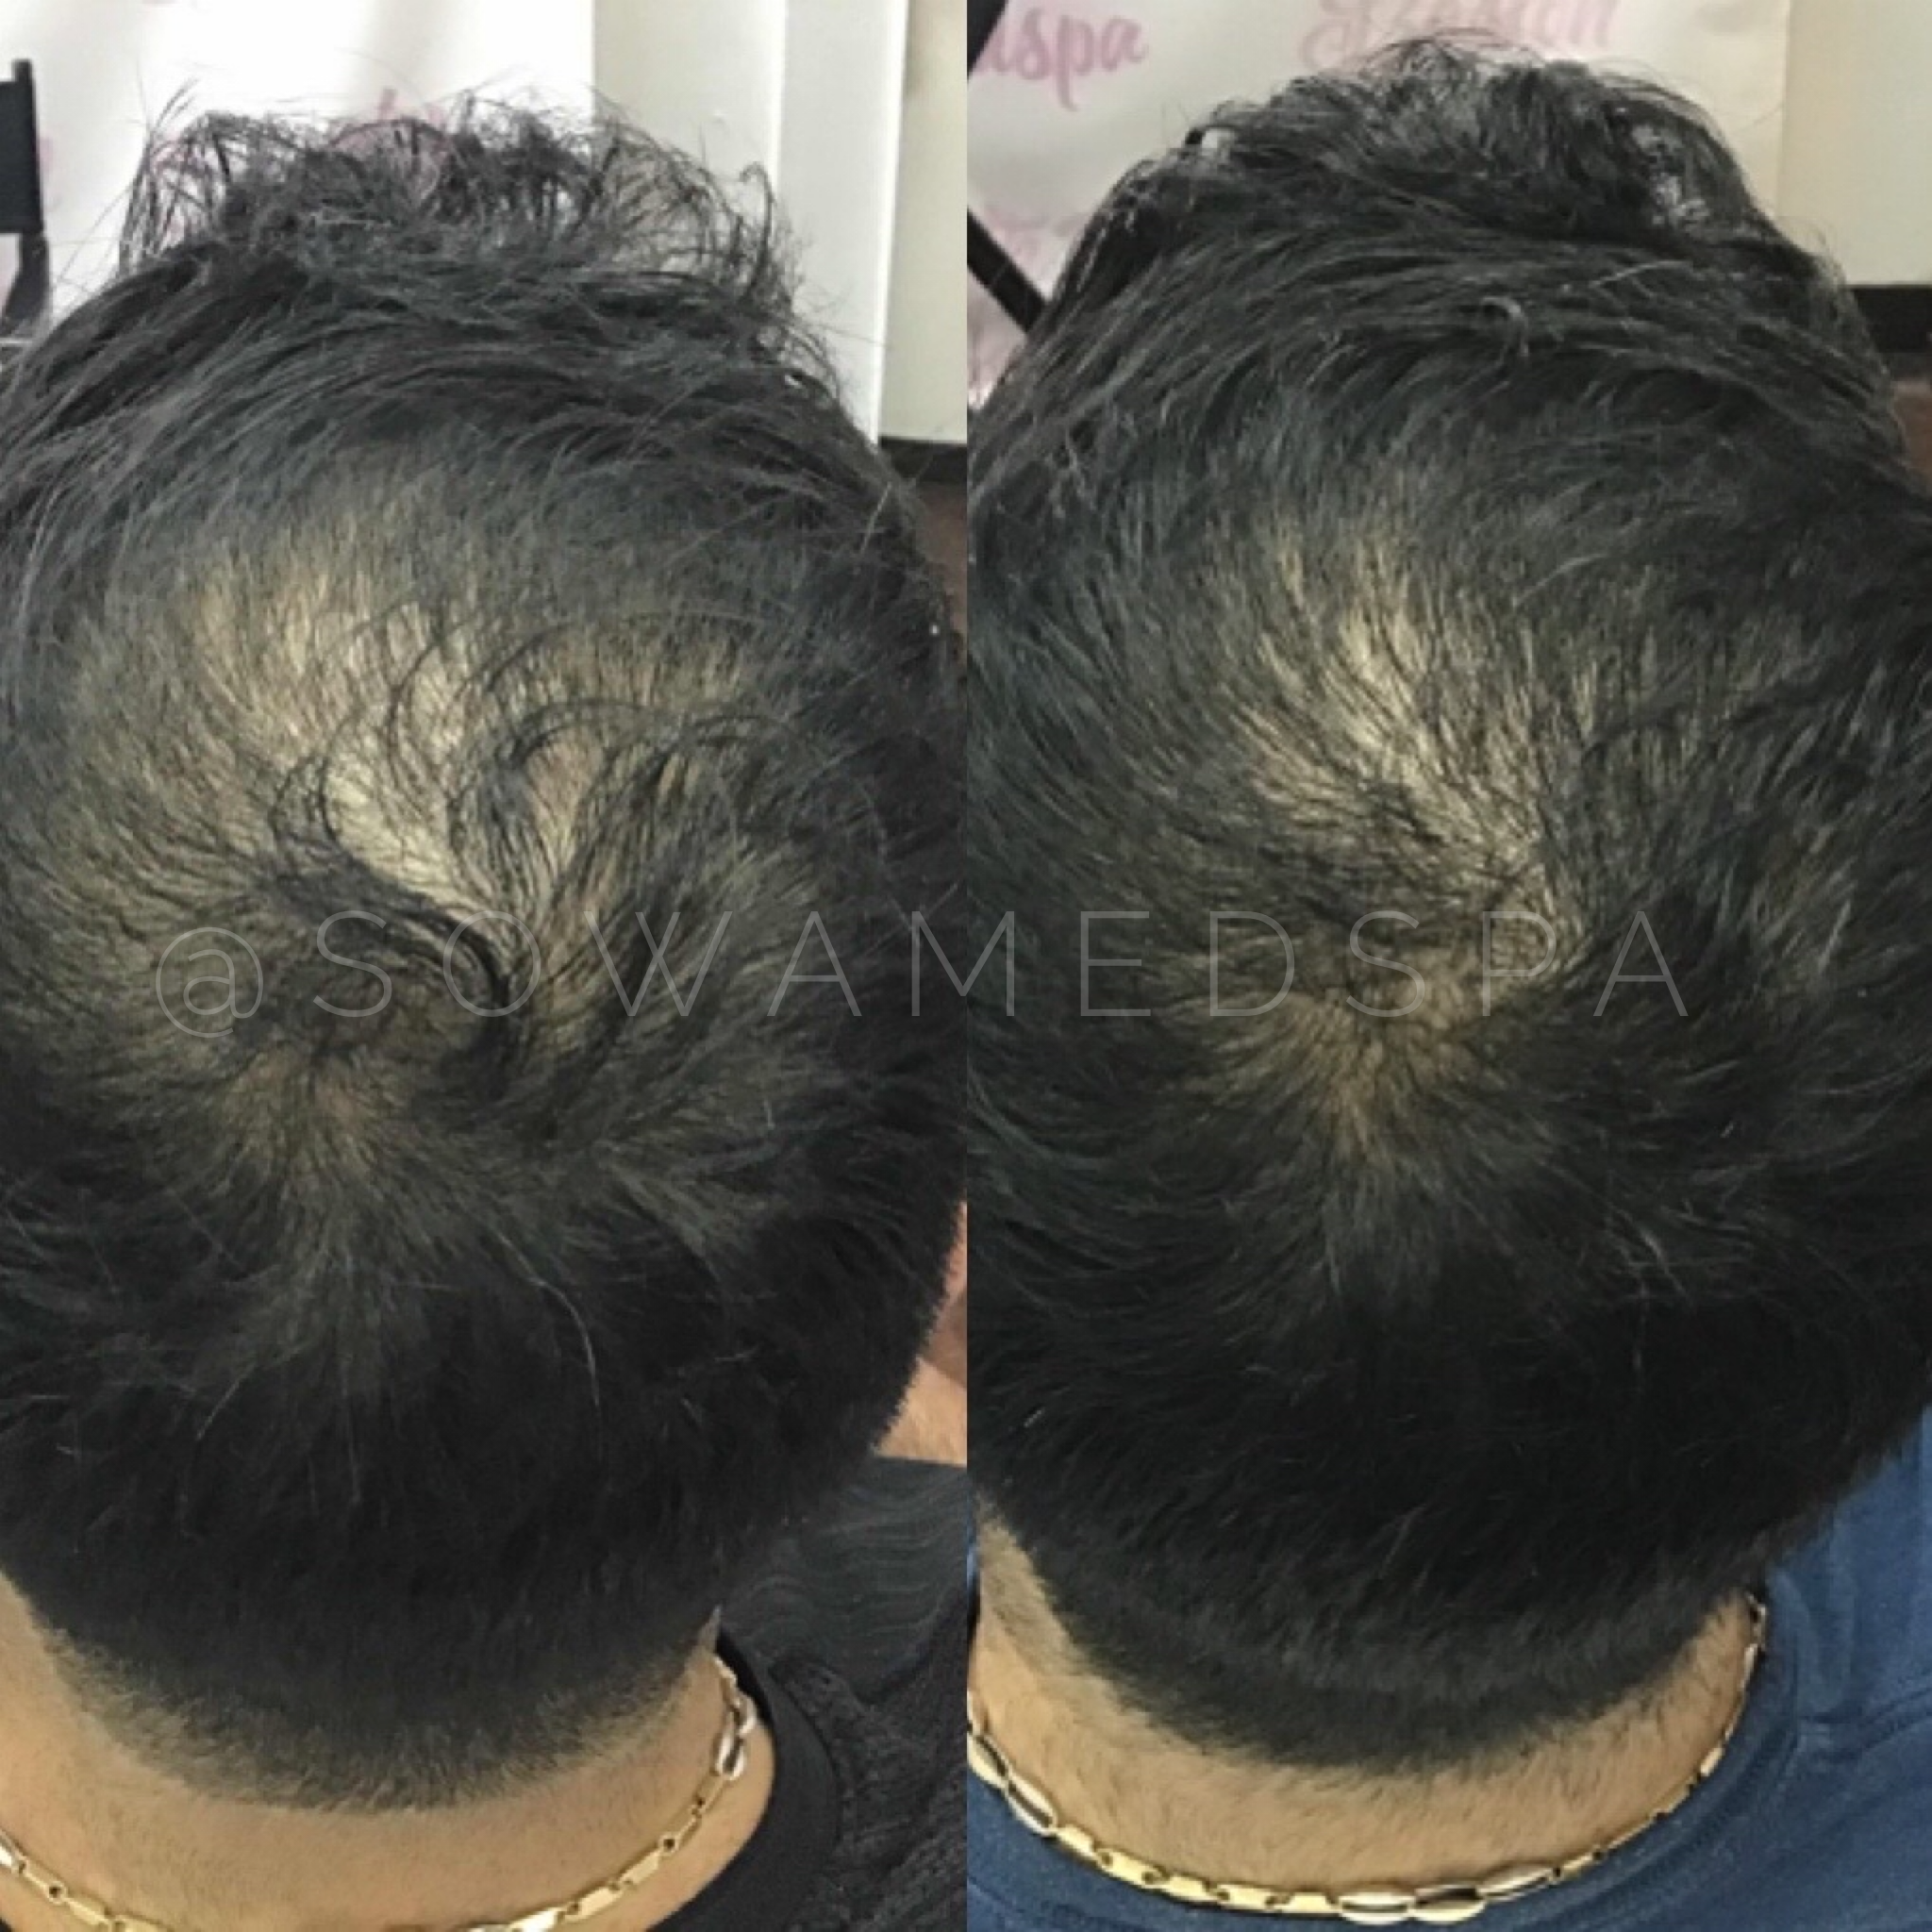 platelet rich plasma prp hair restoration (1)